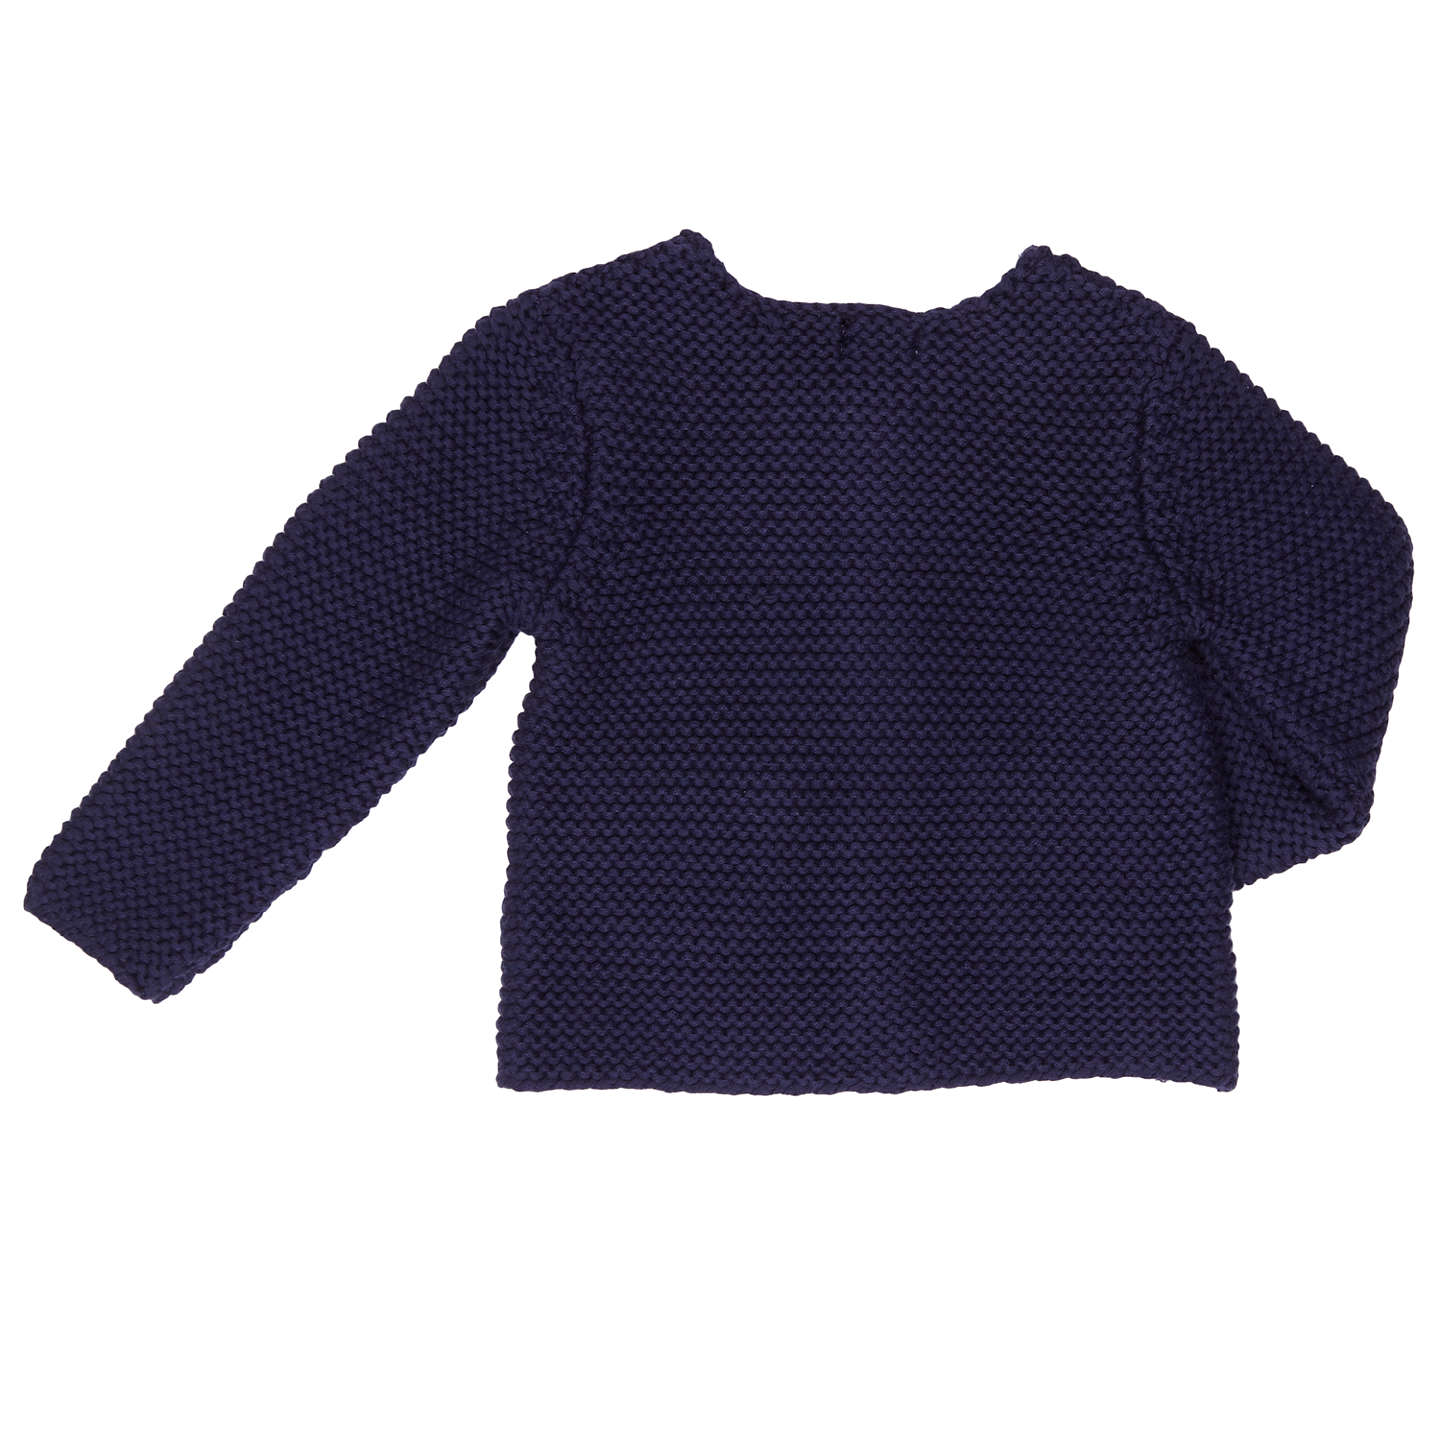 BuyJohn Lewis Baby Chunky Knitted Cardigan, Navy, Tiny baby Online at johnlewis.com